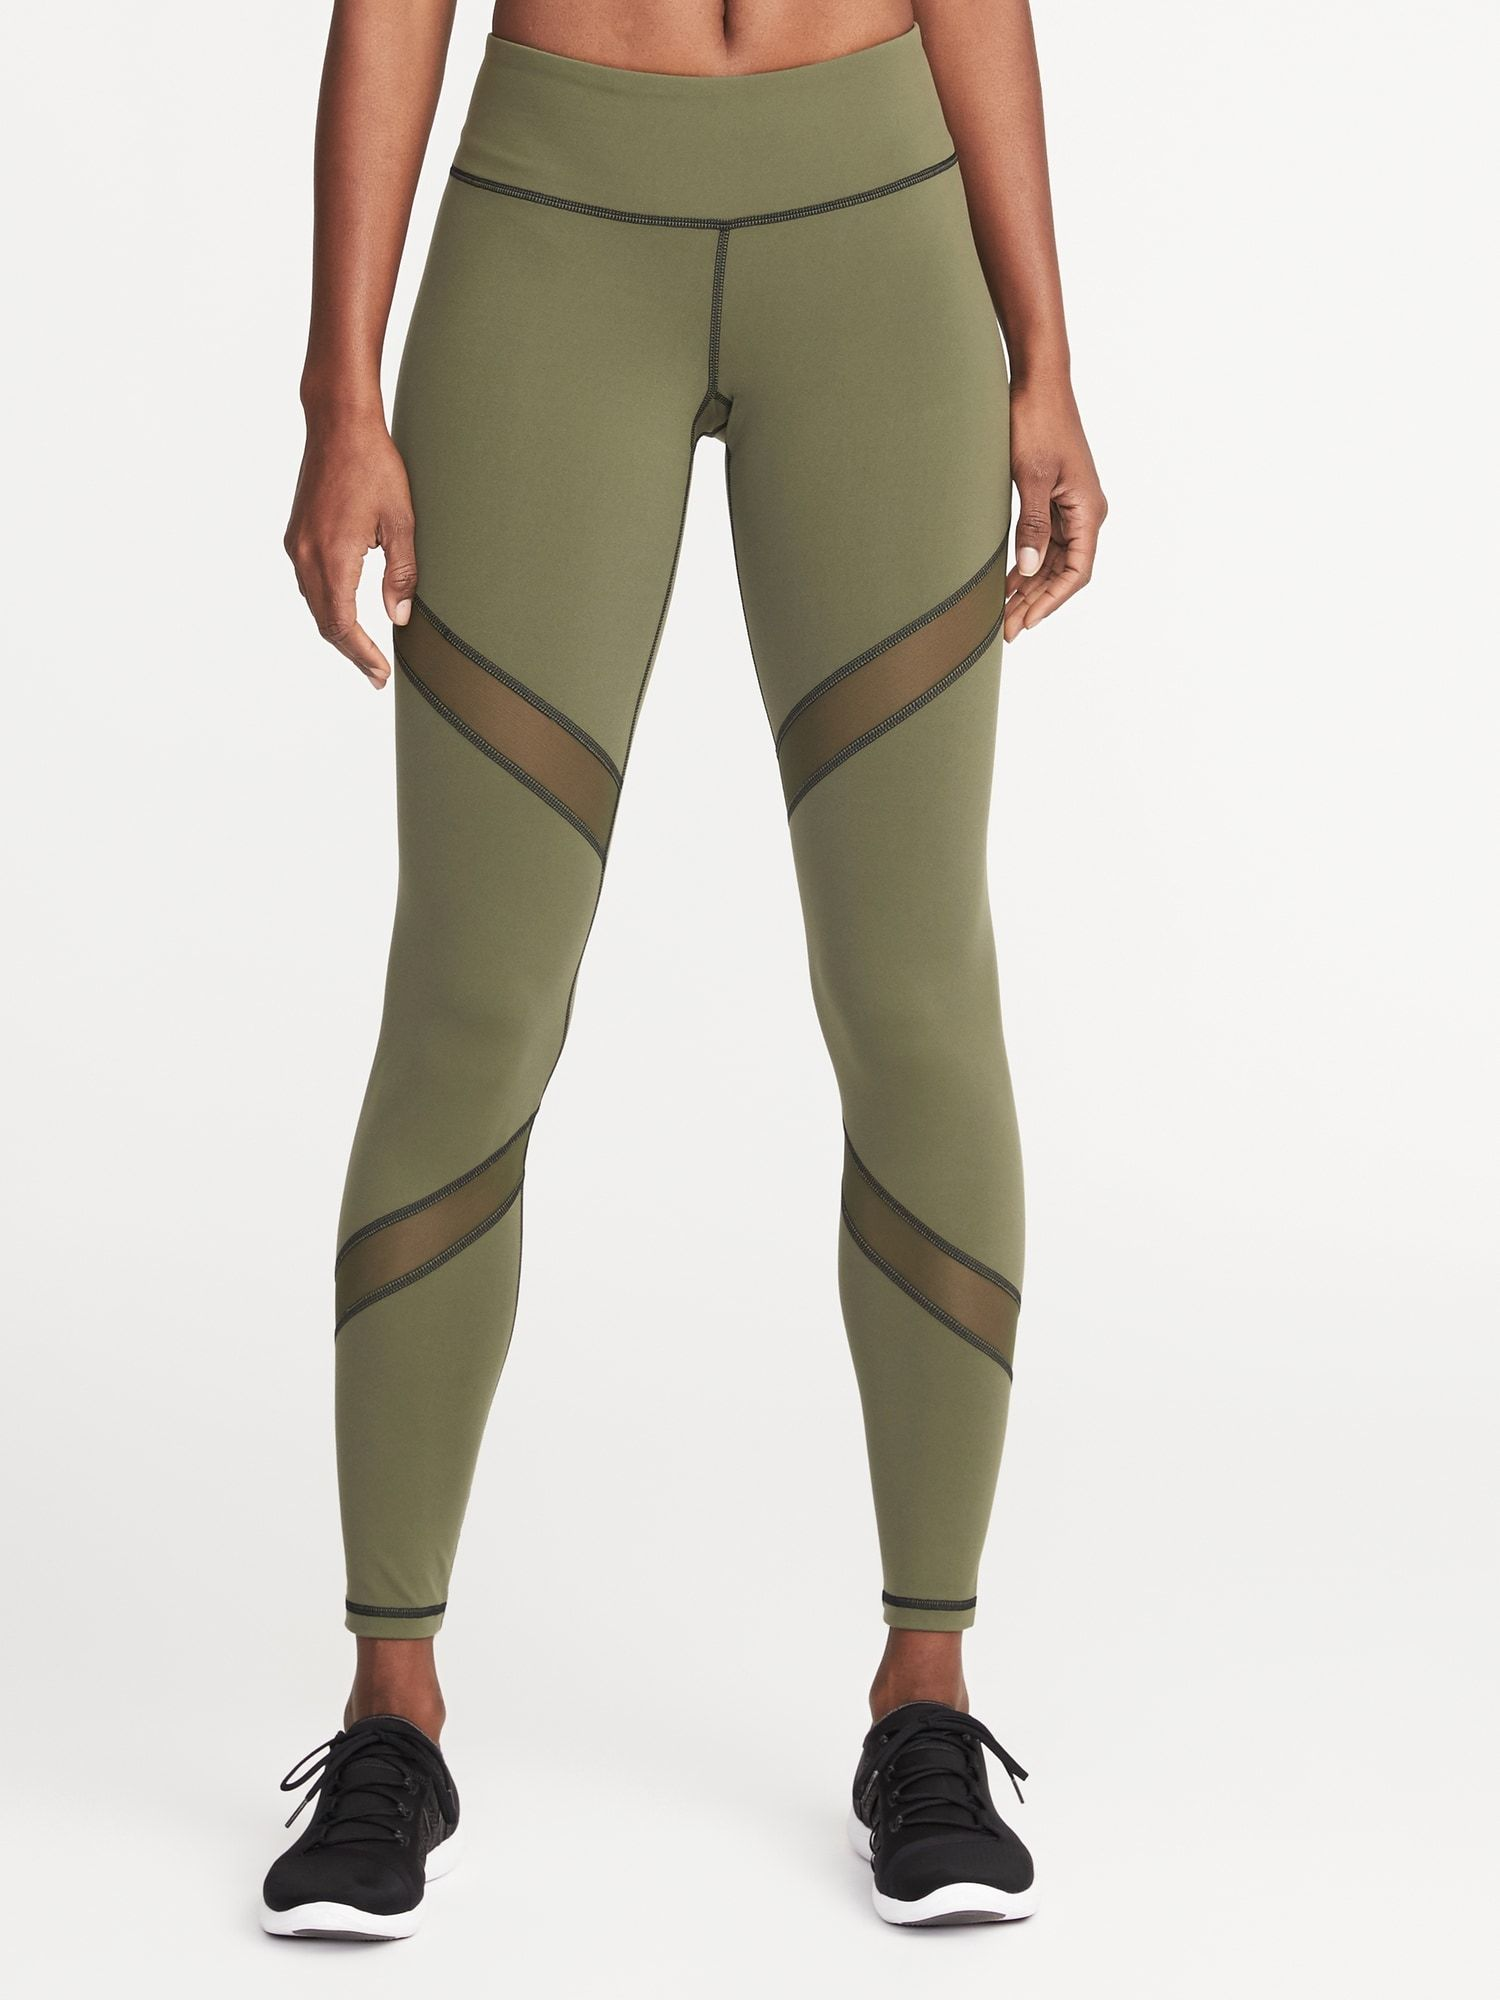 a6147ac3f7f Mid-Rise Mesh-Panel Elevate Compression Leggings for Women